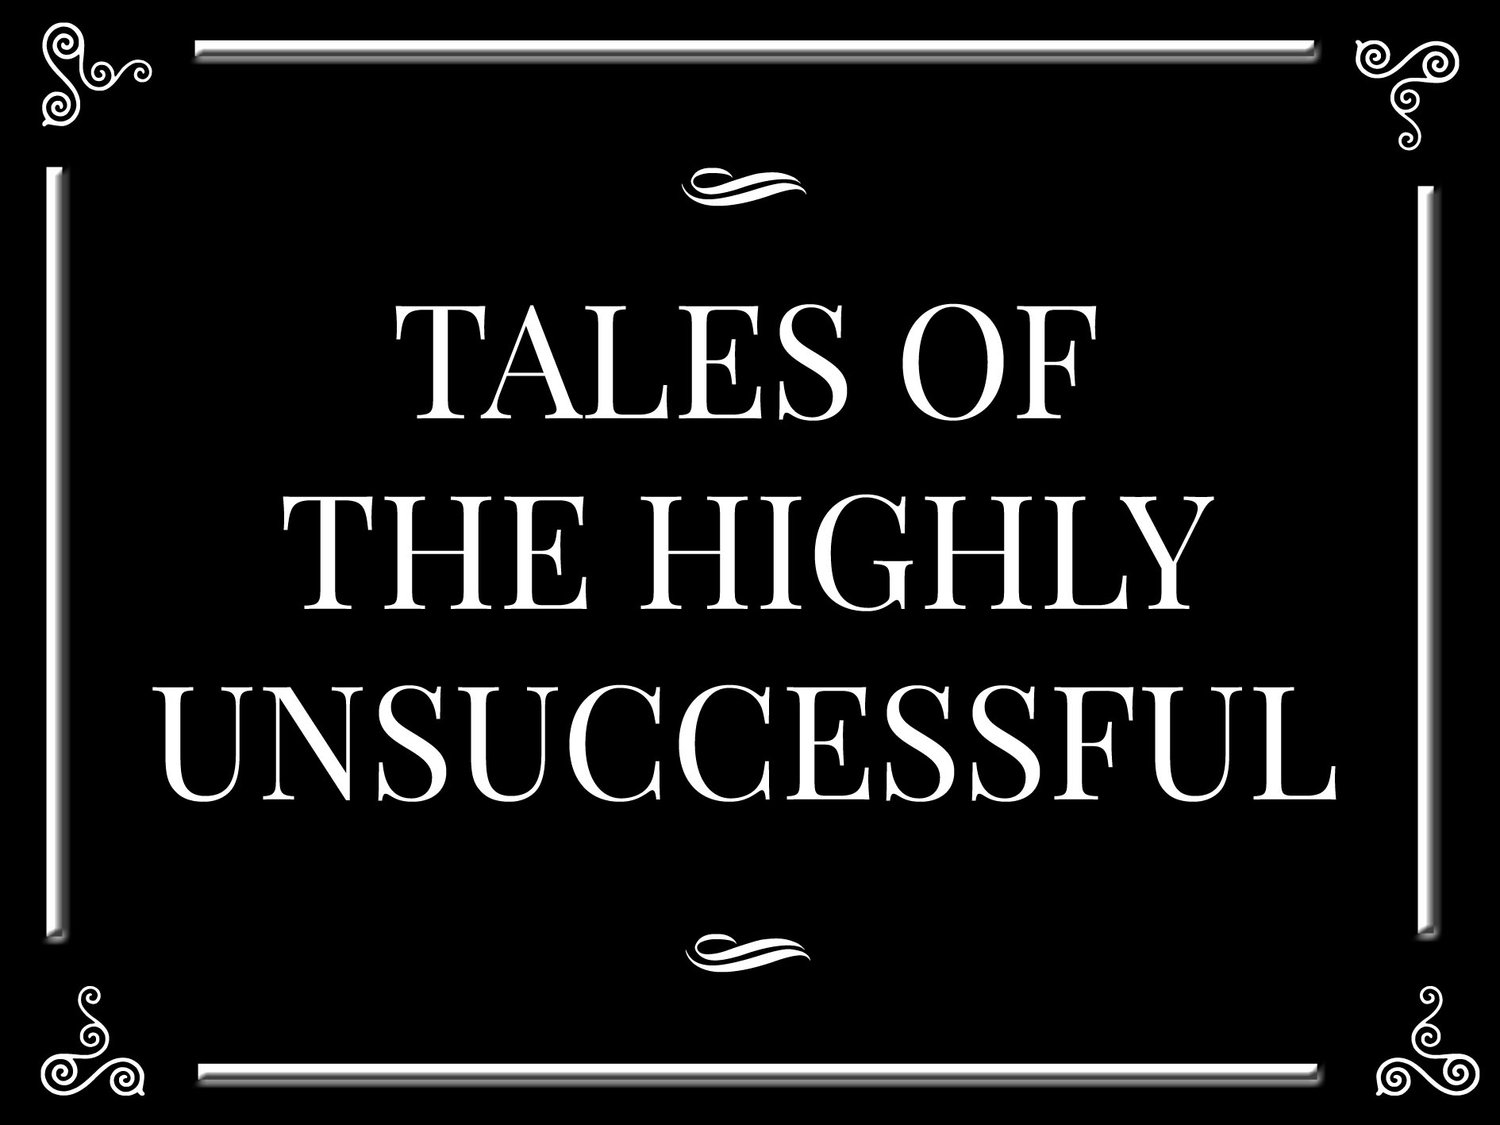 Tales of the Highly Unsuccessful